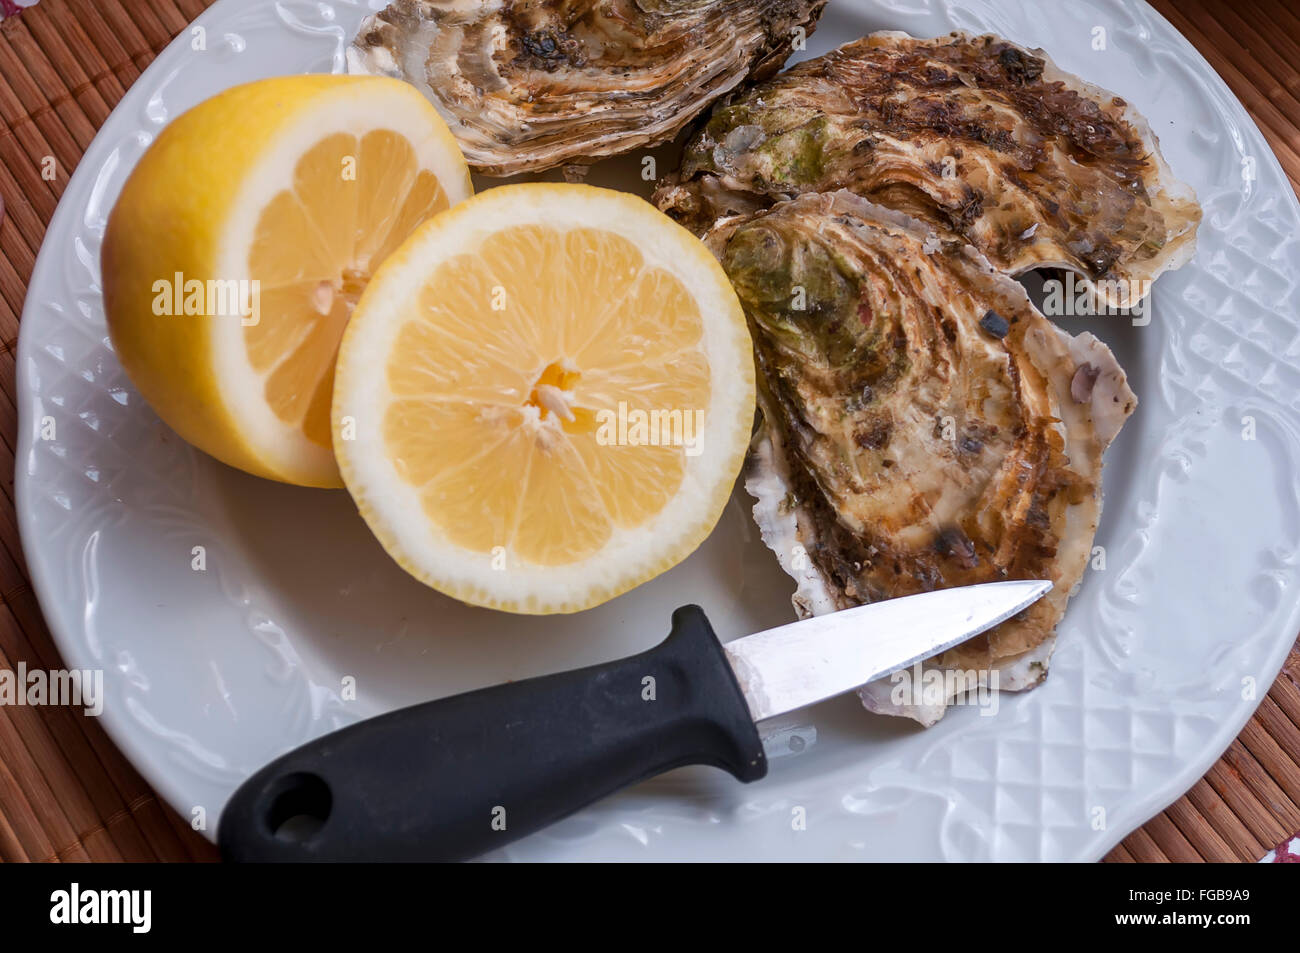 preparation of shellfish for consumption,open it, on the background of lemon in a man's hand - Stock Image